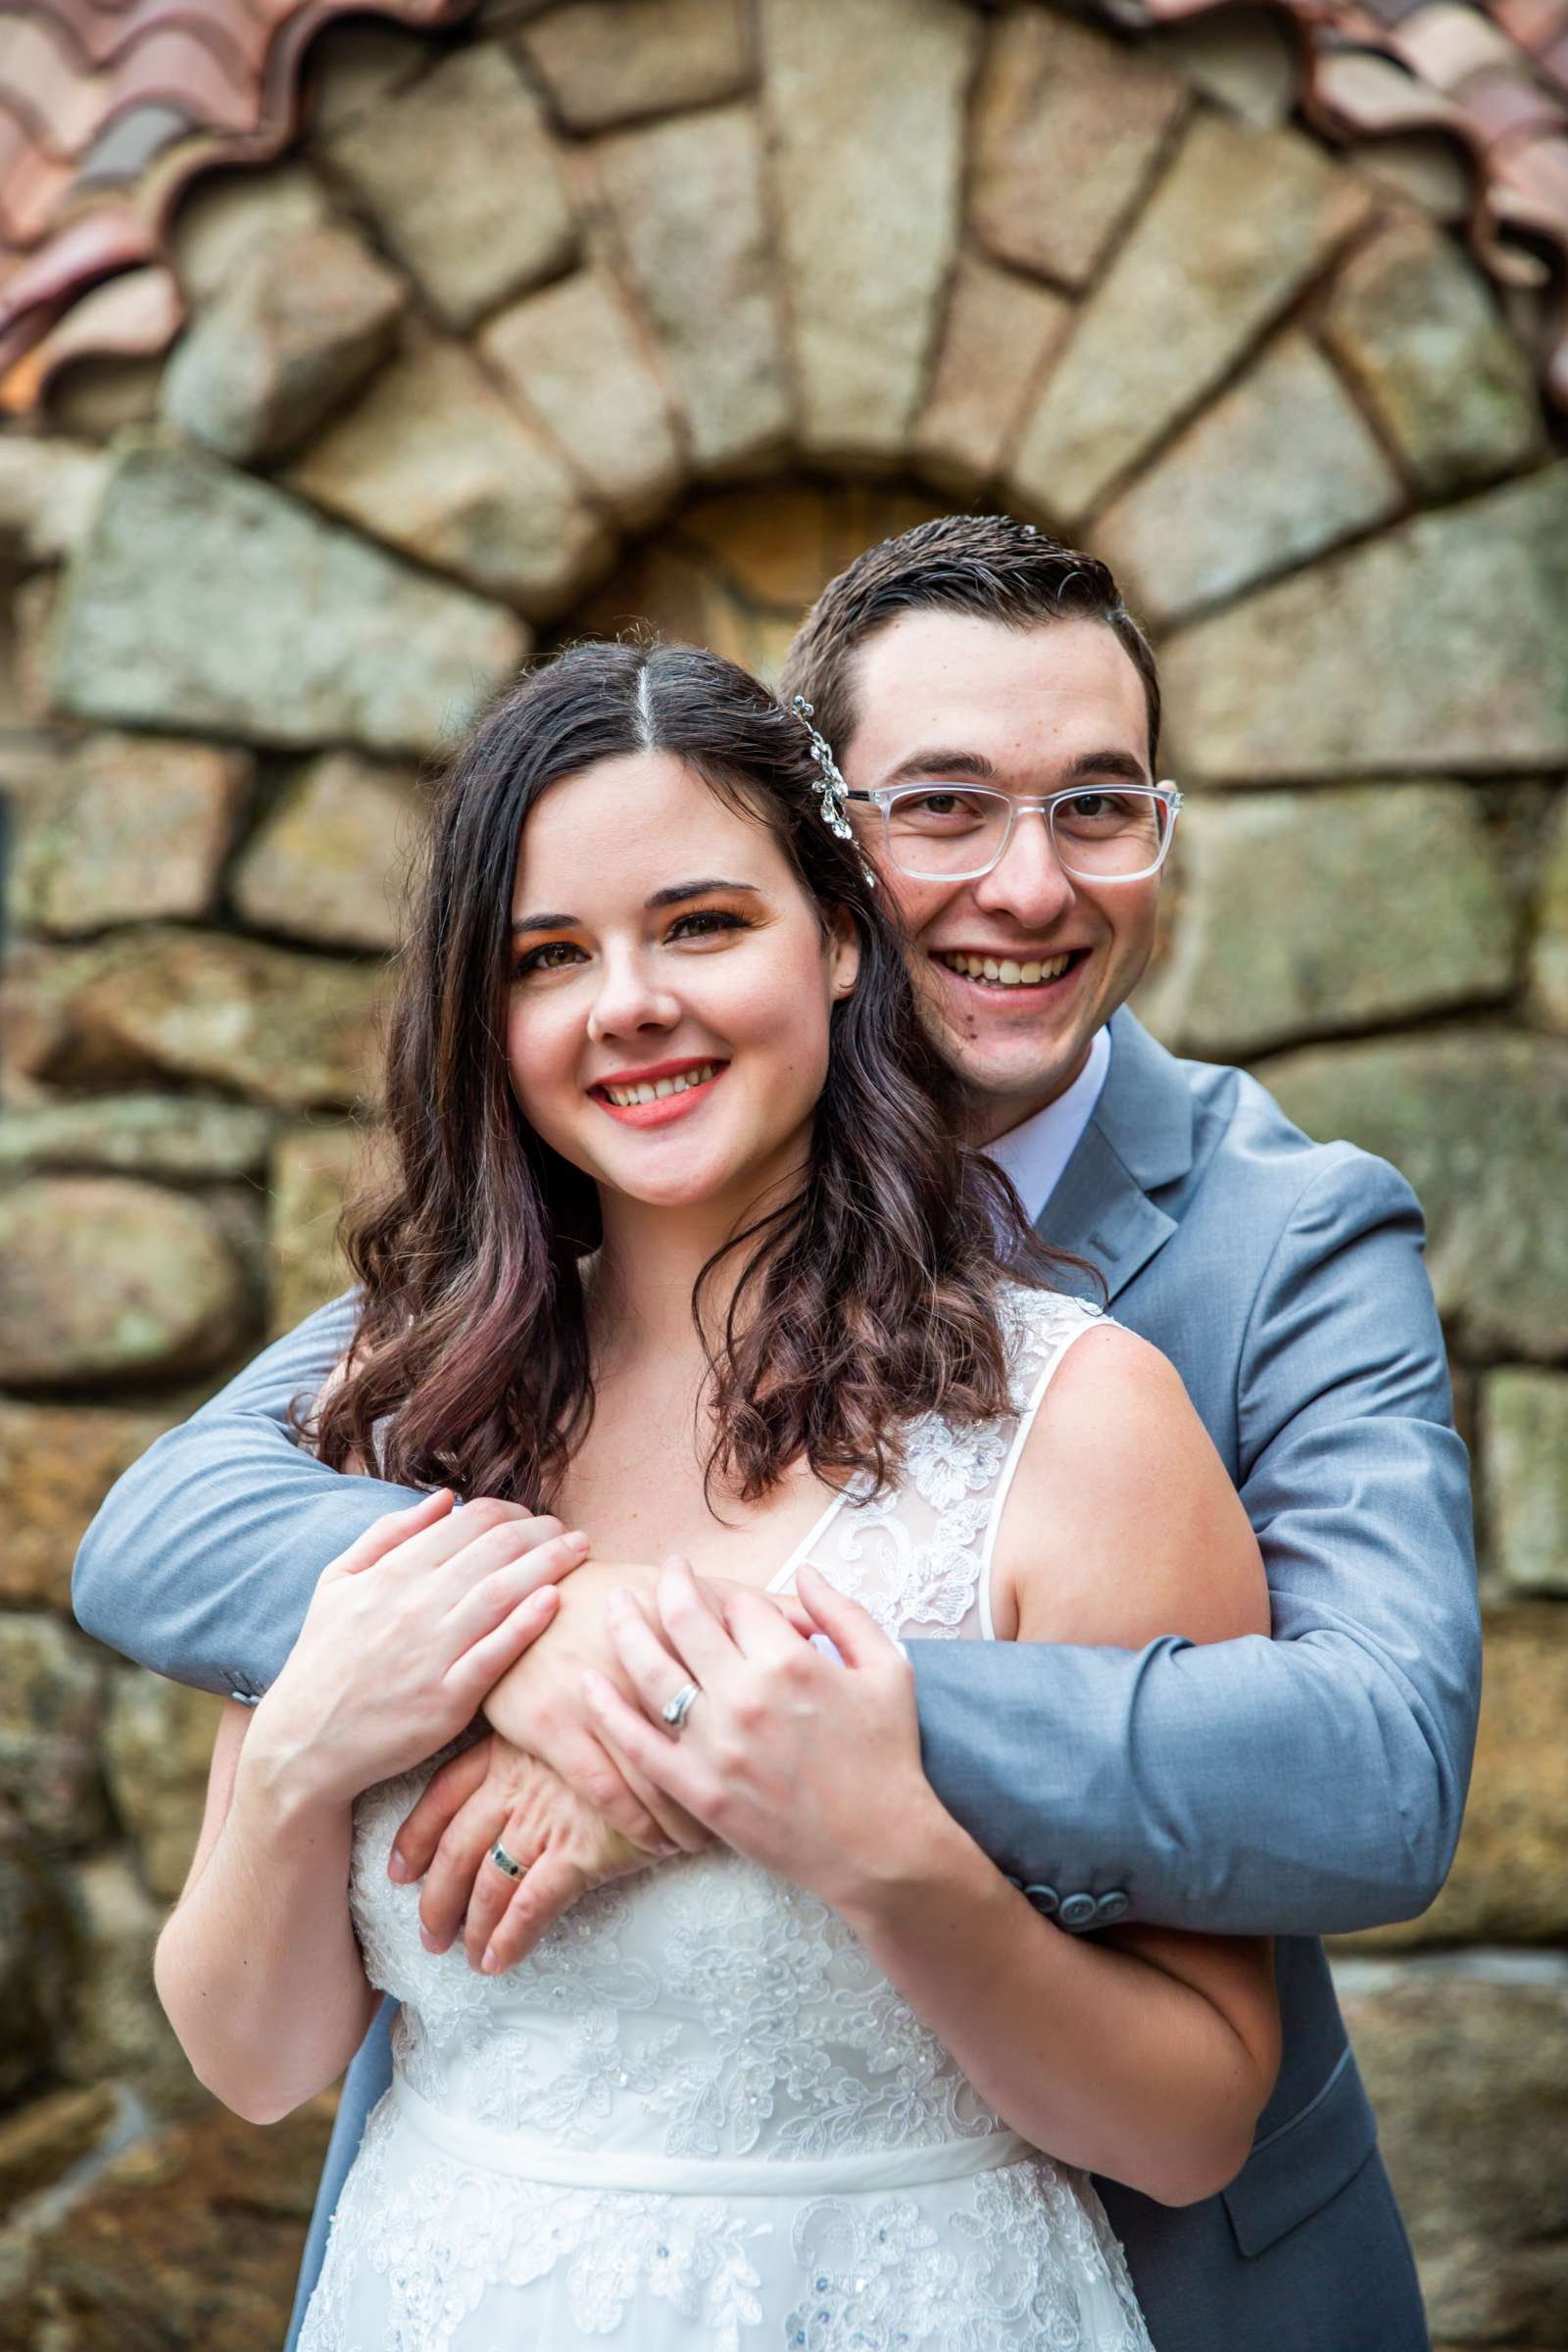 Mt Woodson Castle Wedding, Valerie and Ian Wedding Photo #5 by True Photography